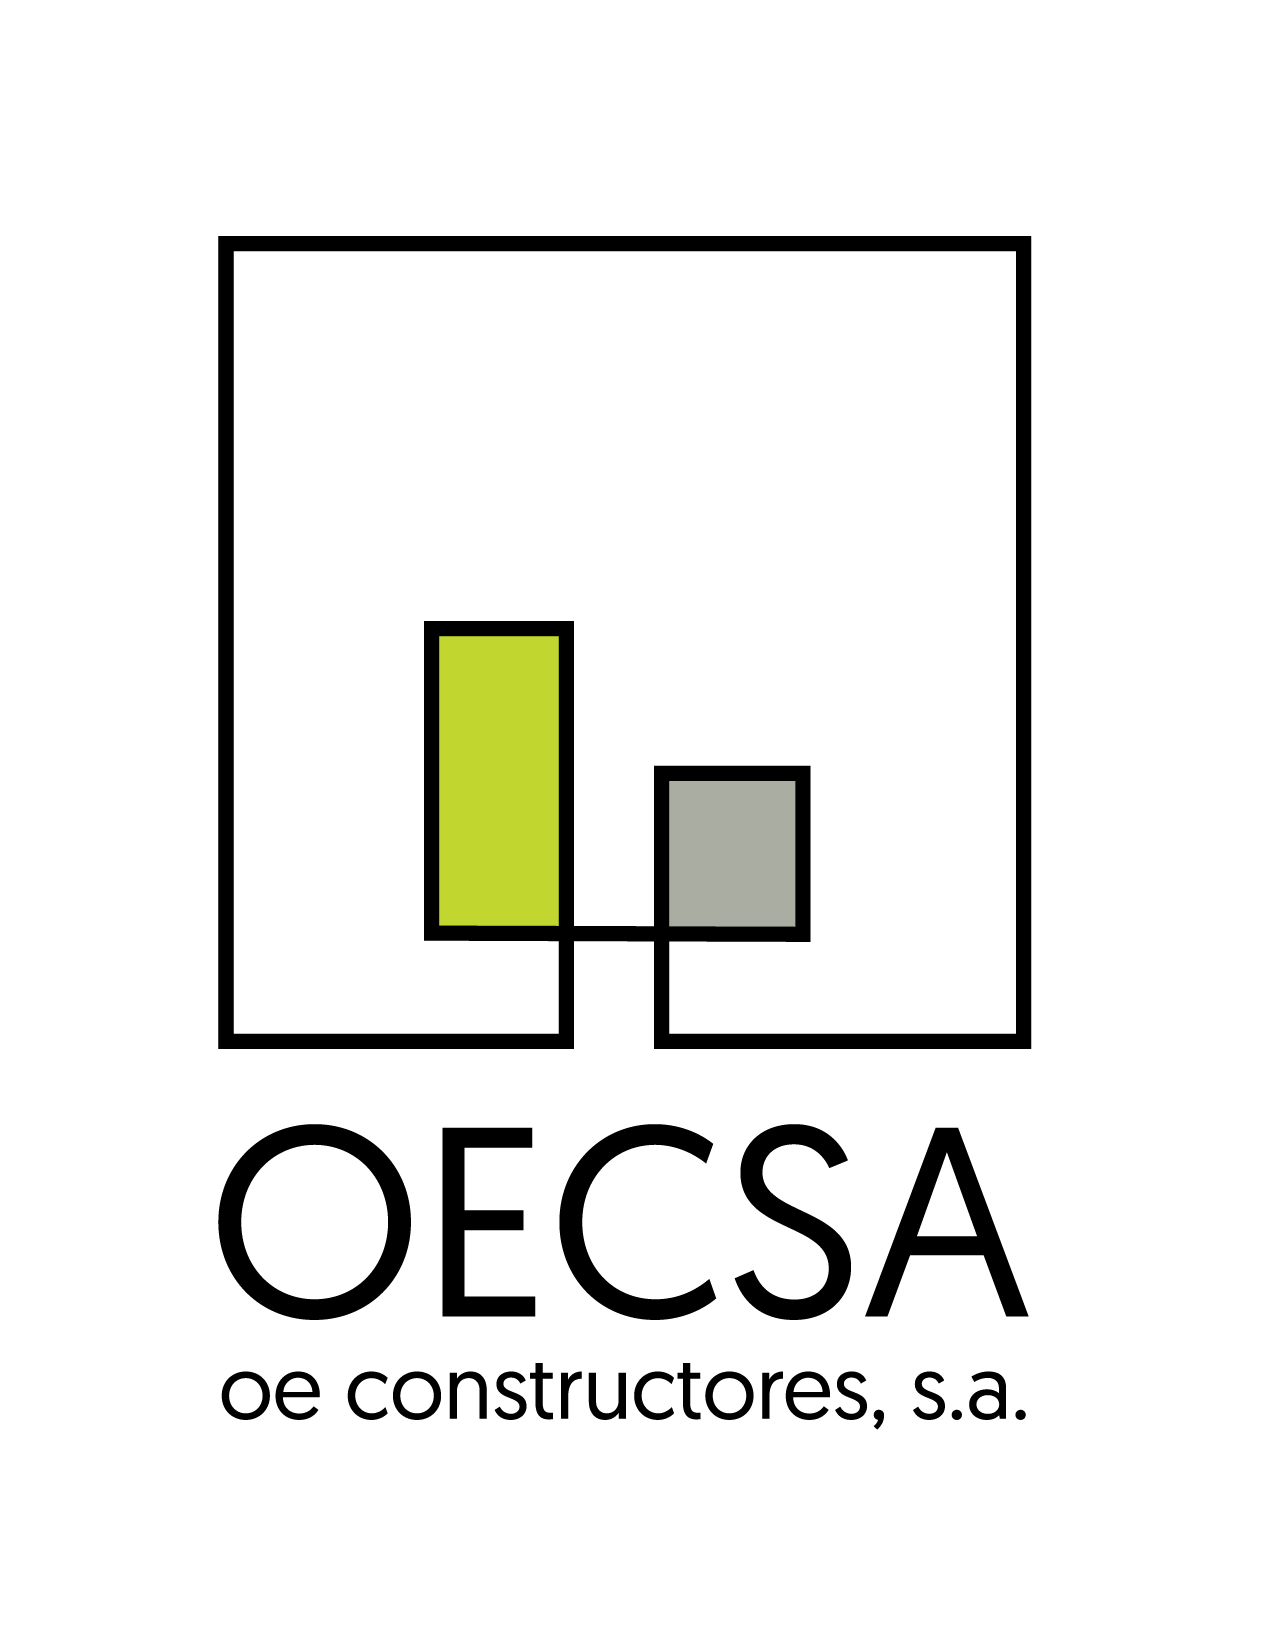 OE constructores, S.A.